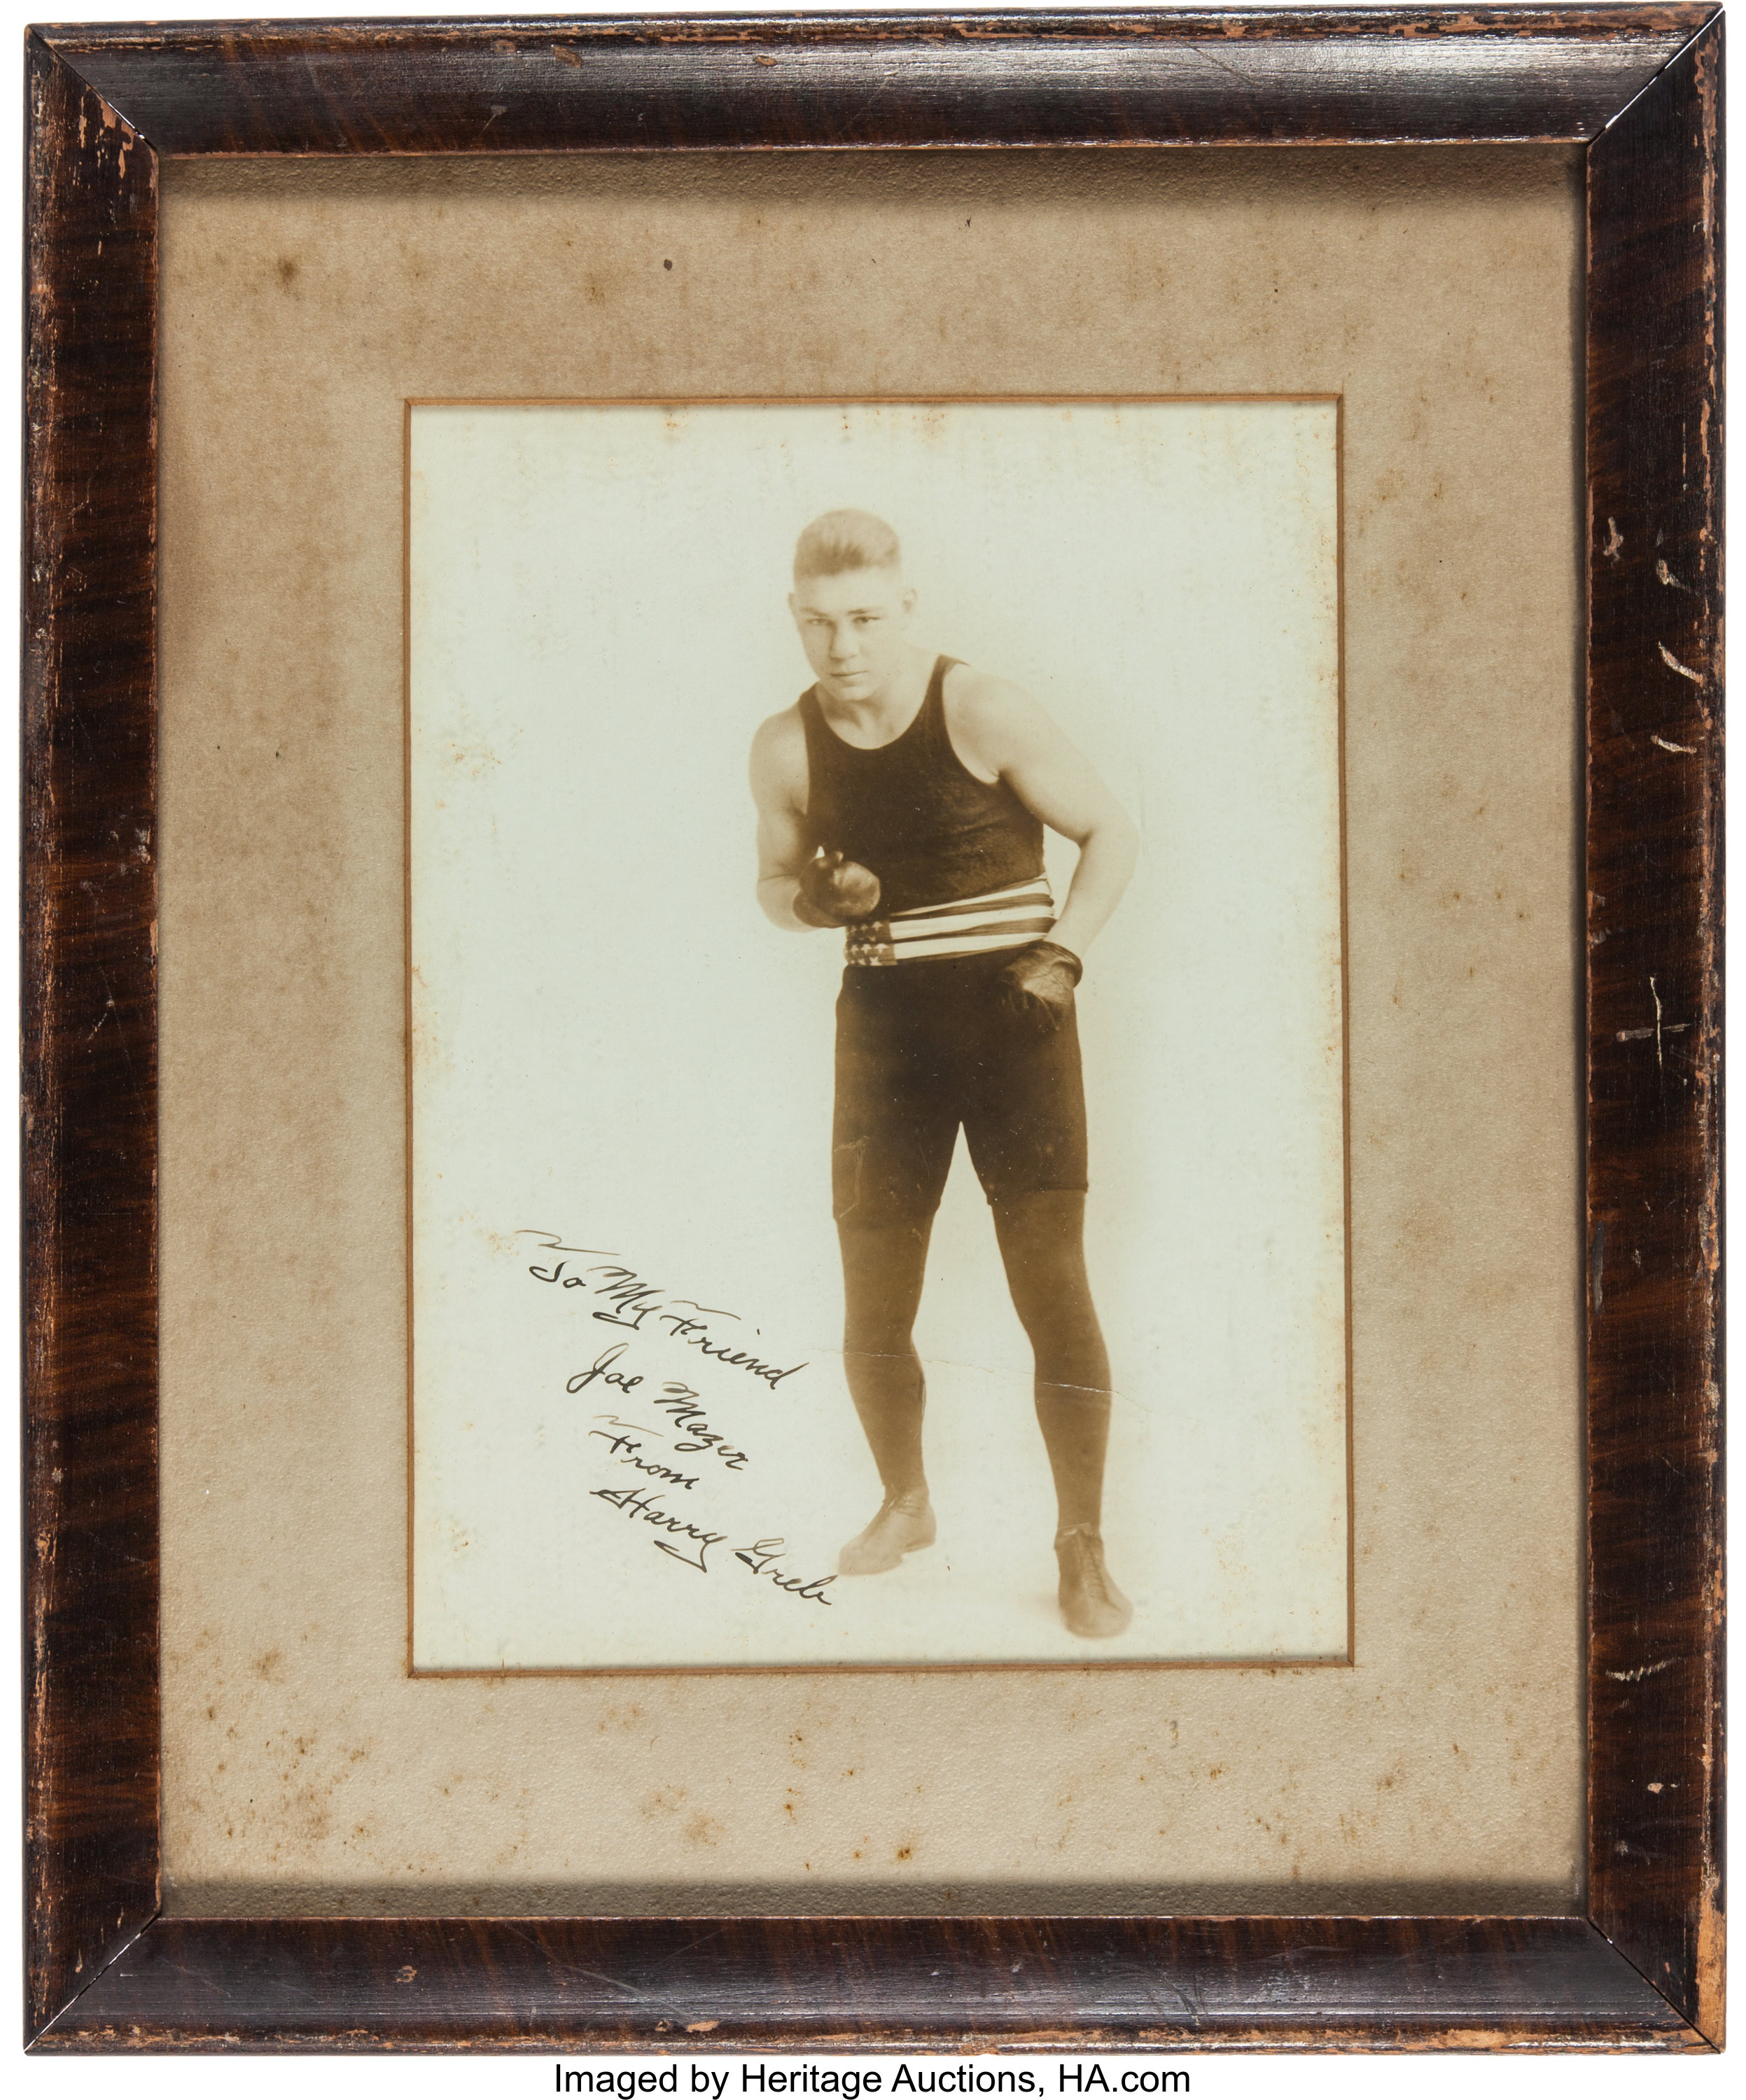 1920's Harry Greb Signed Photograph to Leading Pittsburgh Boxing